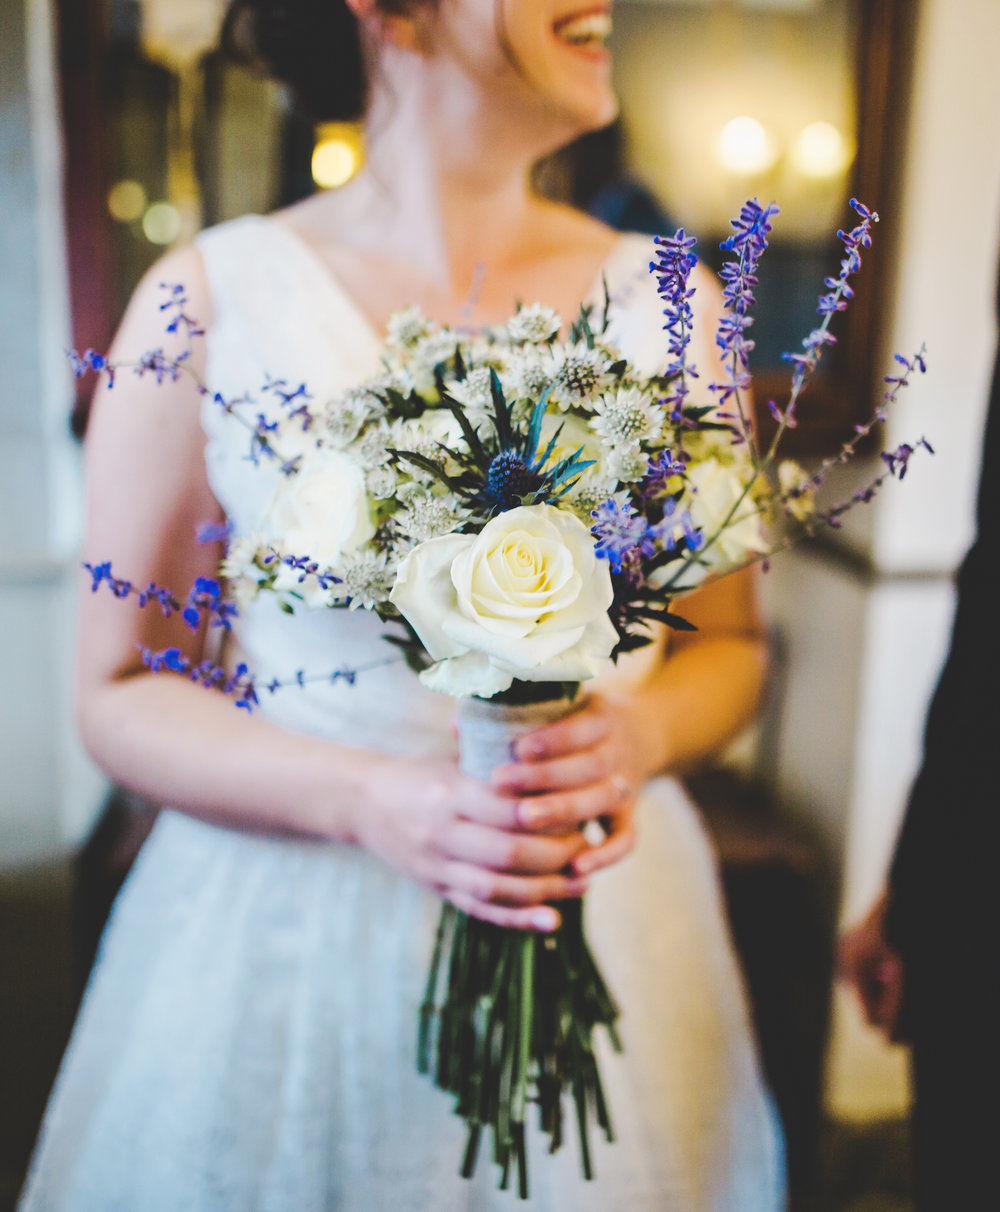 The bride holding her white and purple flower bouquet- Lancashire wedding photography